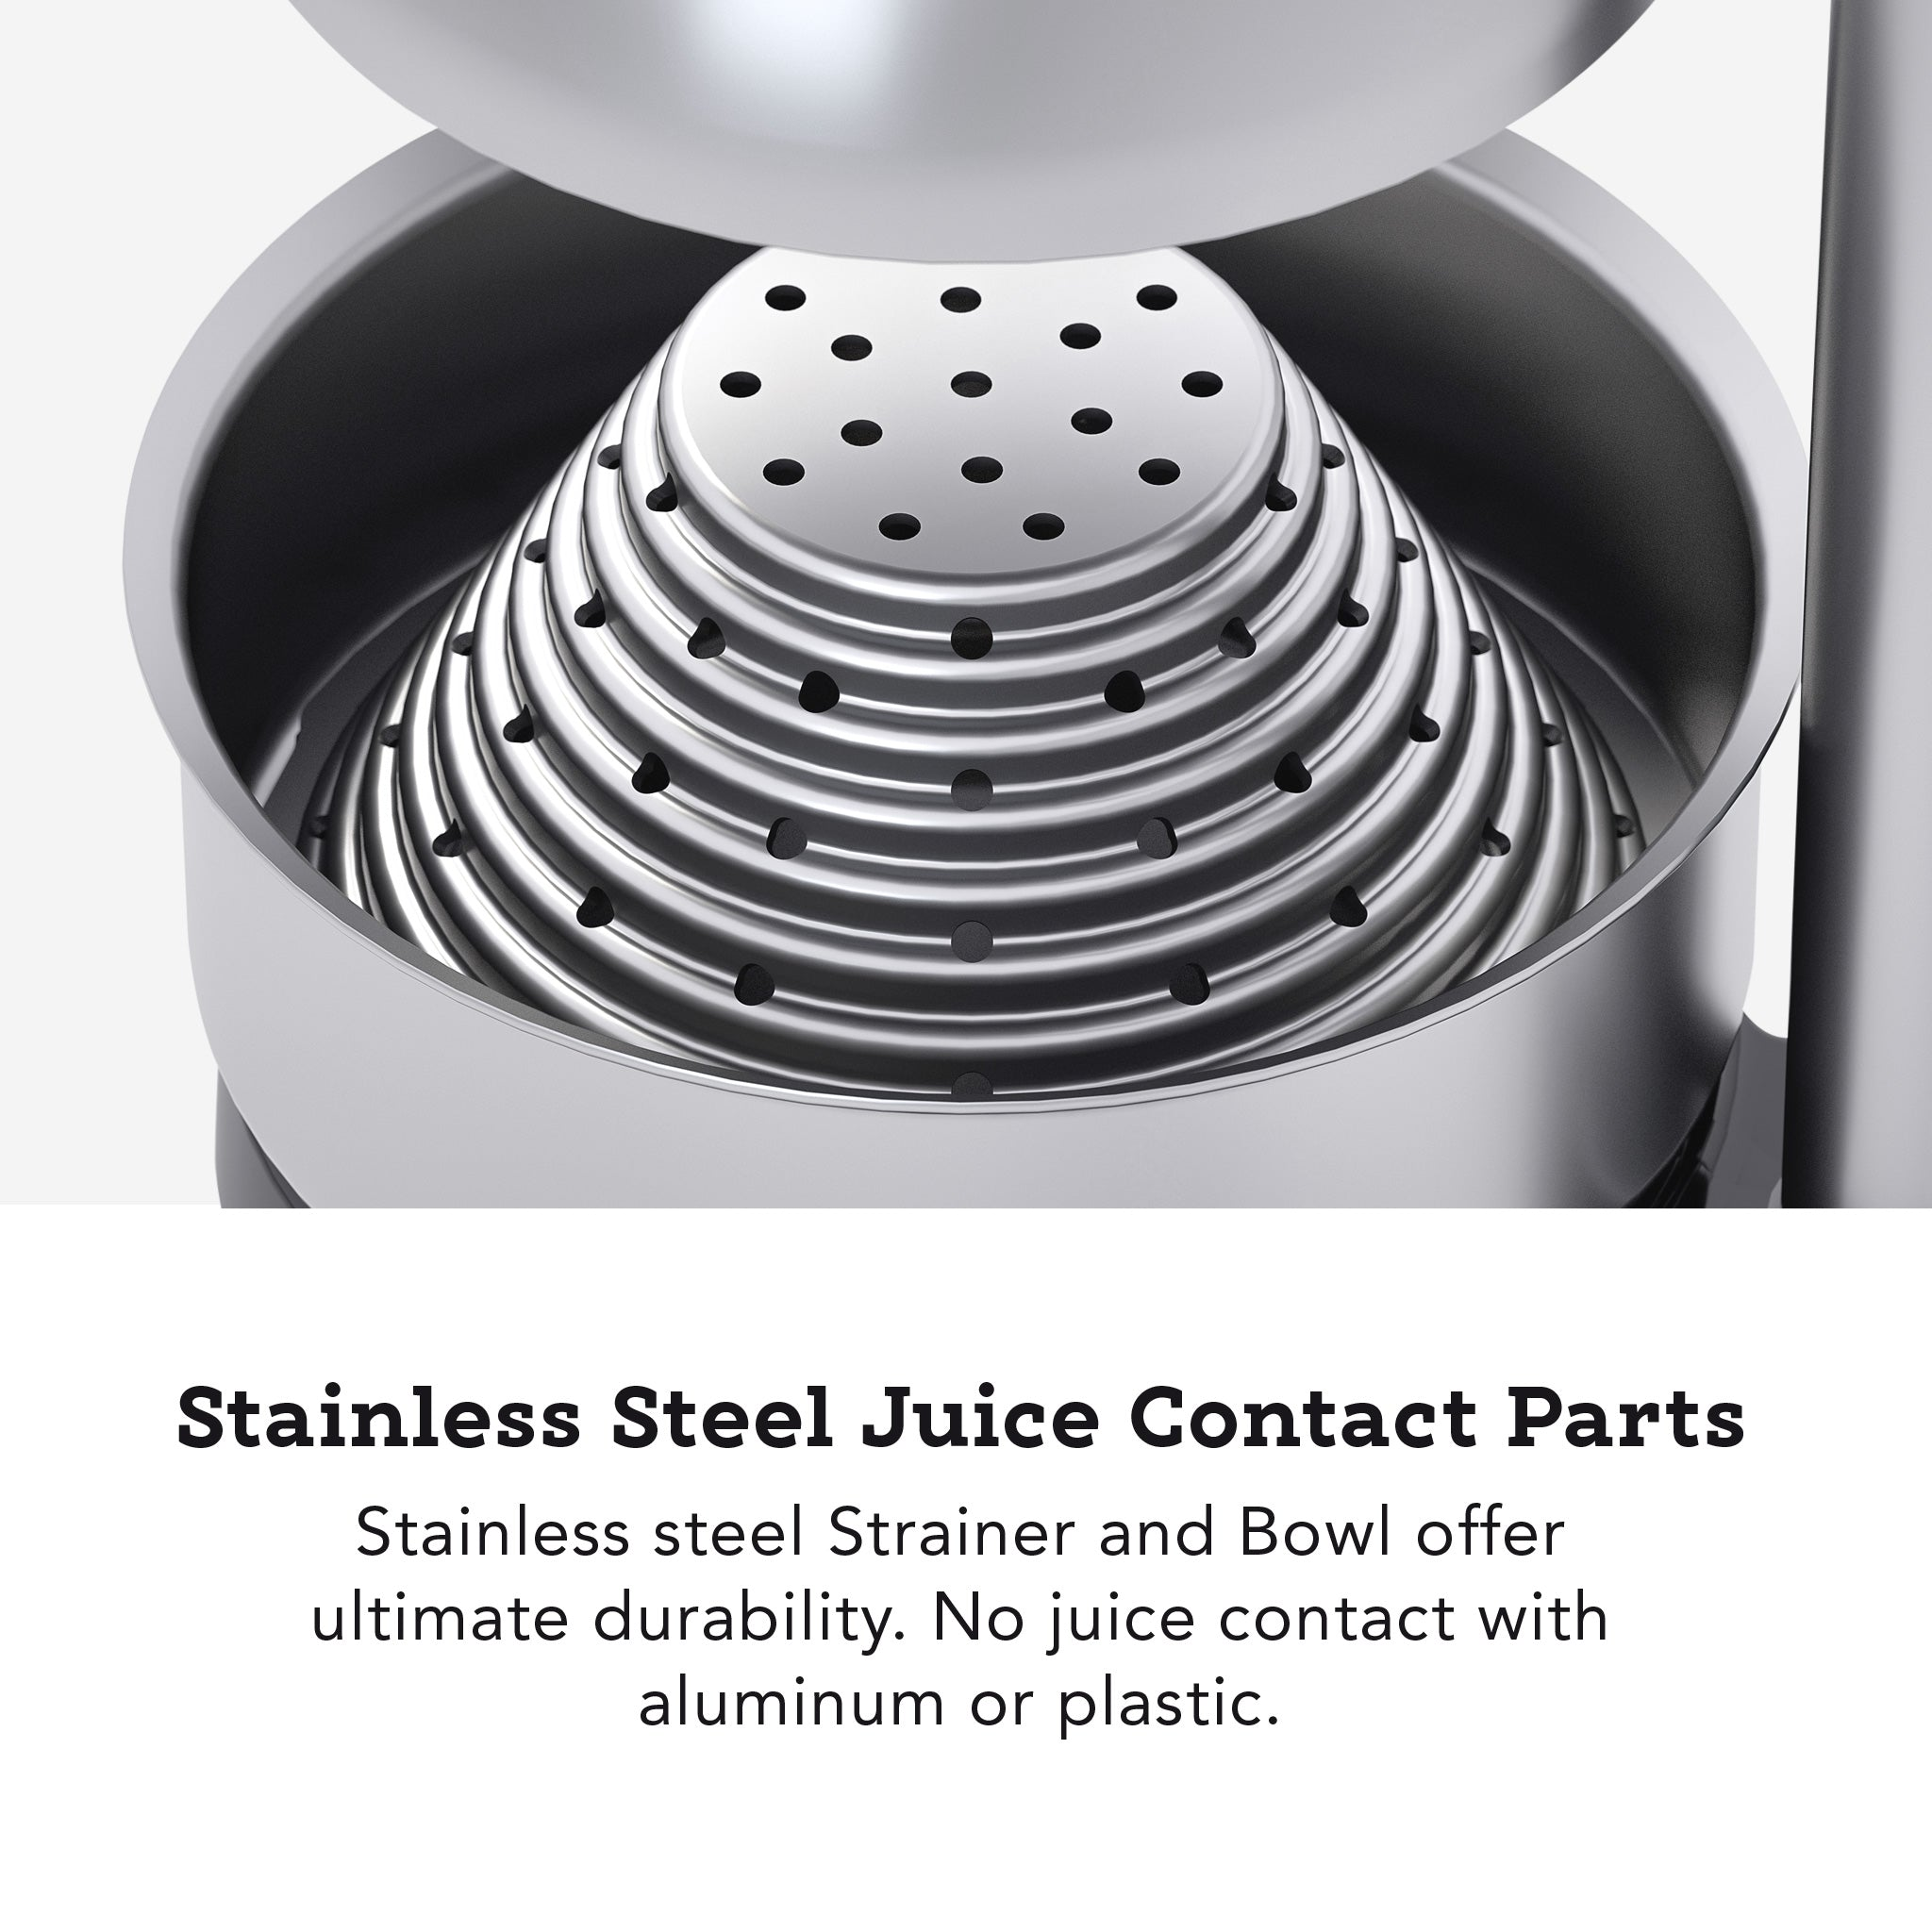 Tribest Professional Cancan Manual Pomegranate Juice Press MJP-105 in Black. Stainless Steel Juice Contact Parts